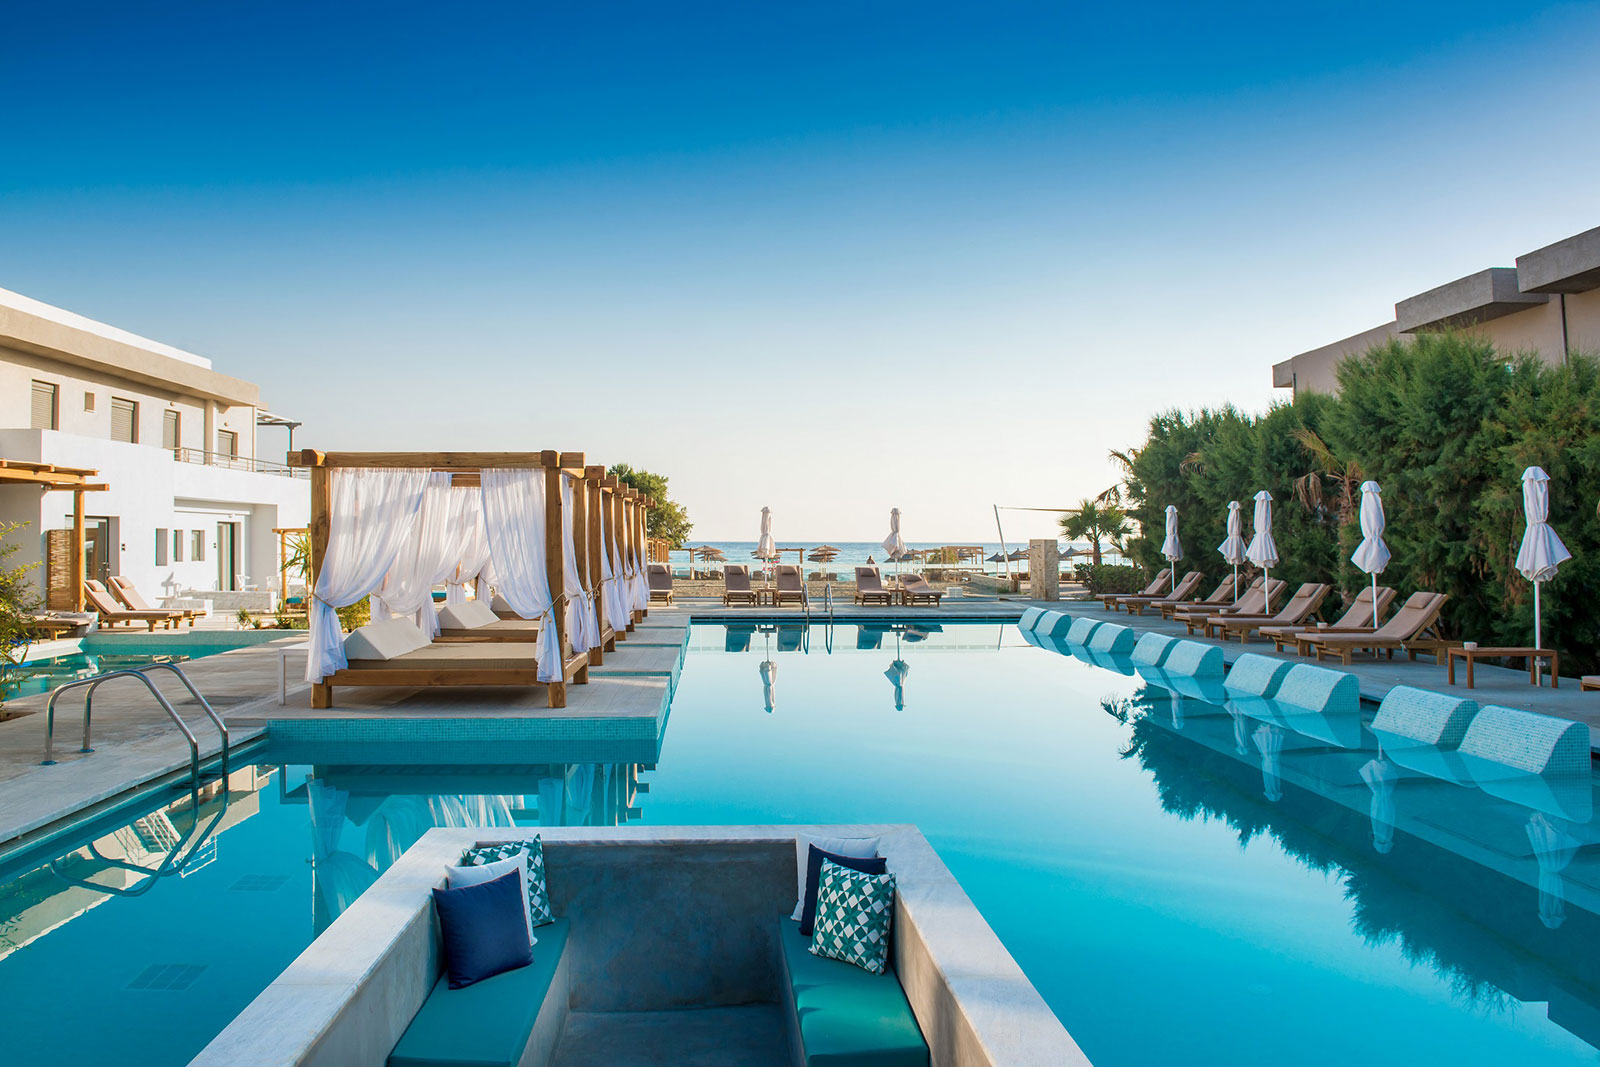 Enorme Lifestyle Beach Resort Hotel  Amoudara Heraklio